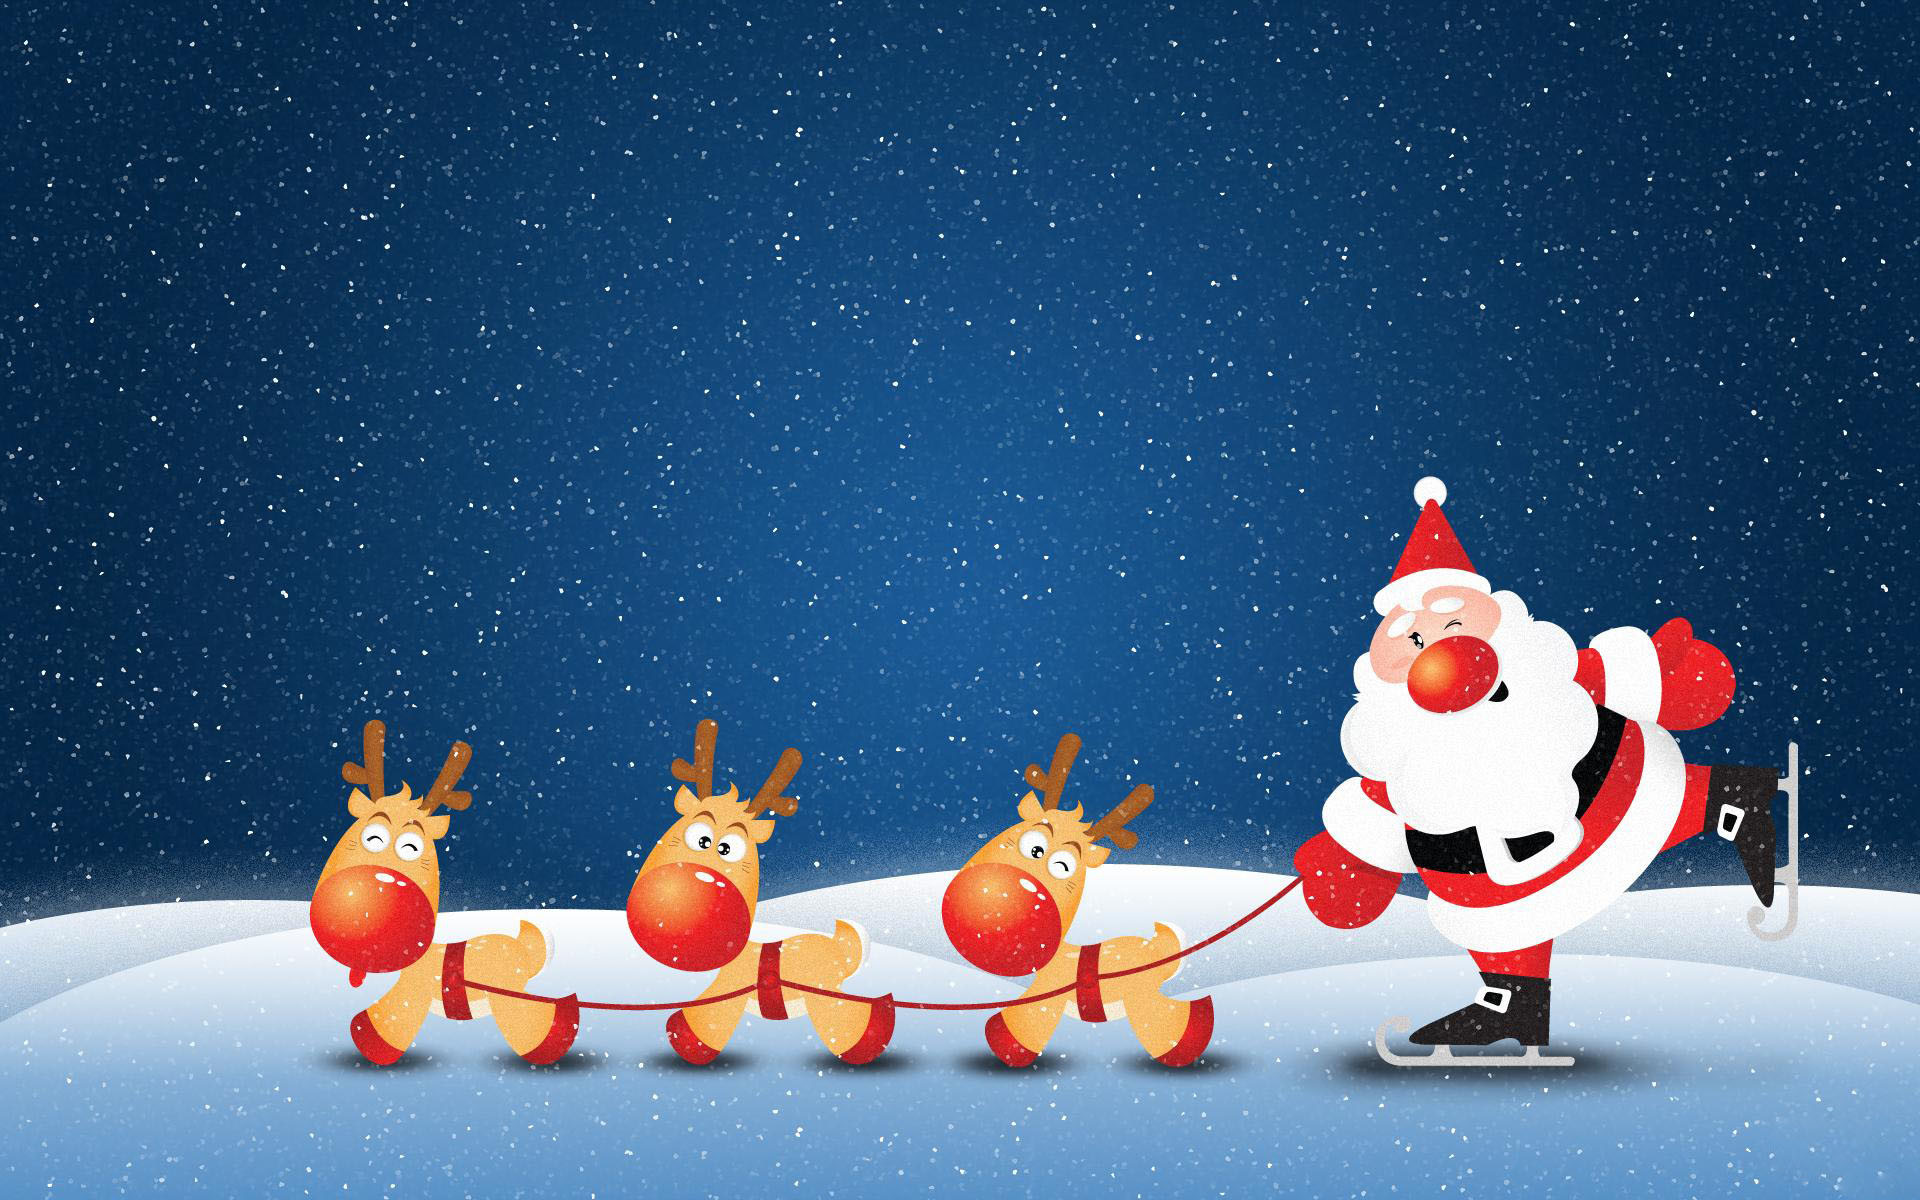 … 48 hd free christmas wallpapers for download …